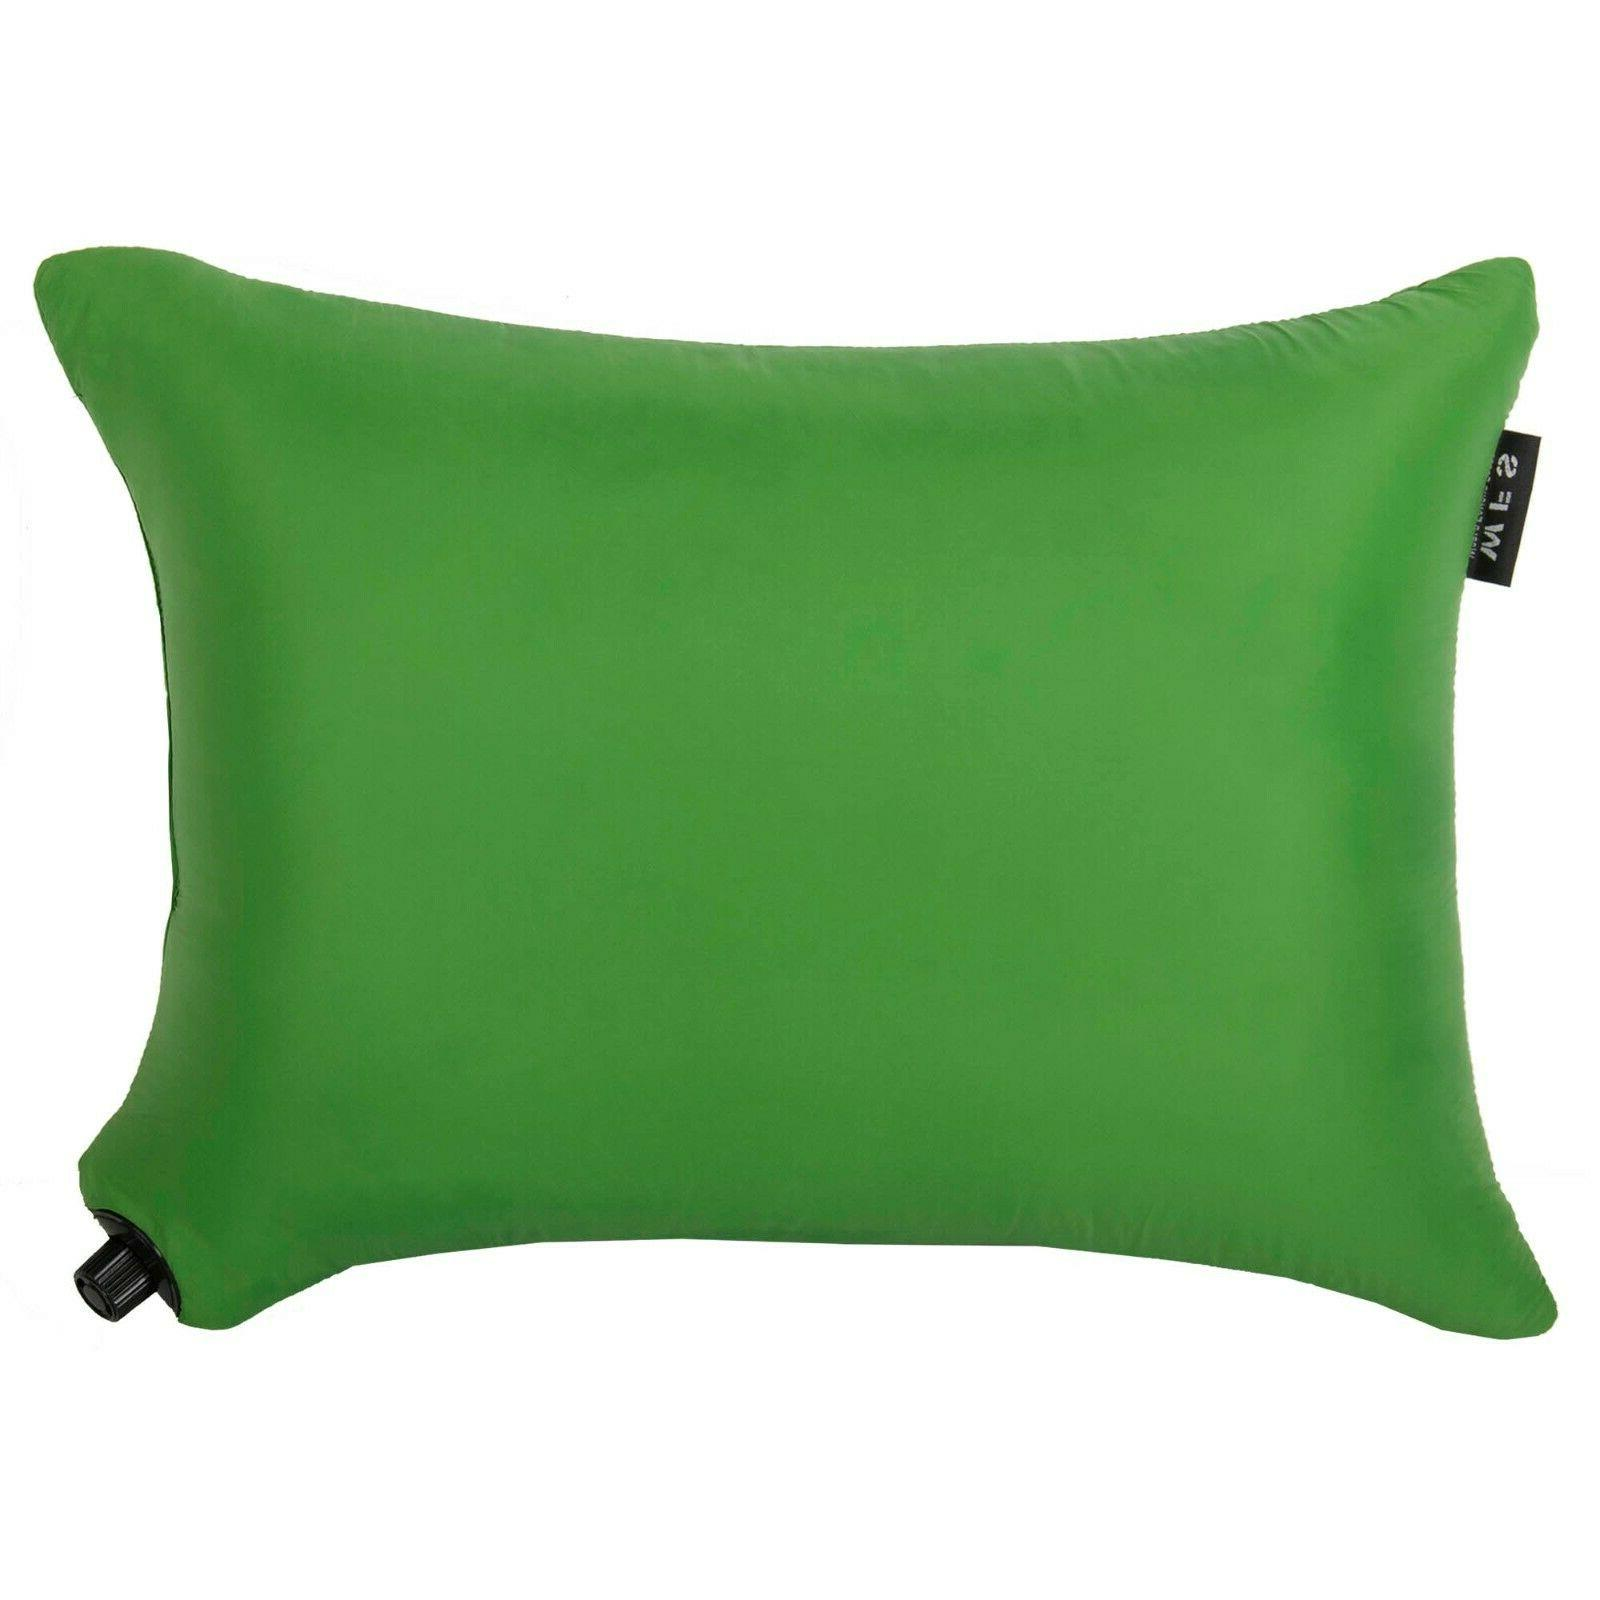 inflatable pillow includes compact stuff sack great